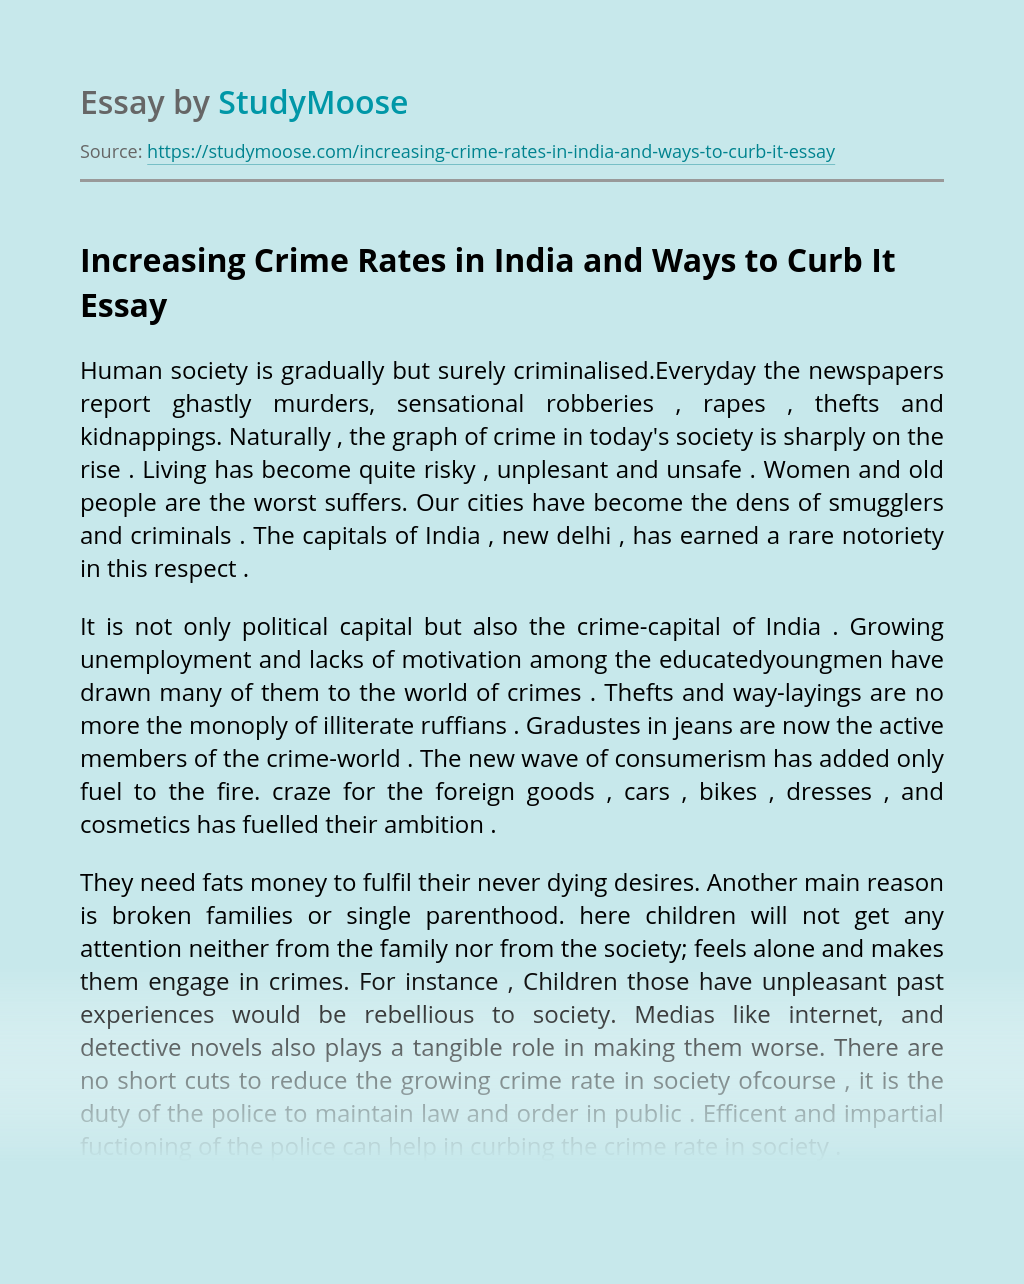 Increasing Crime Rates in India and Ways to Curb It